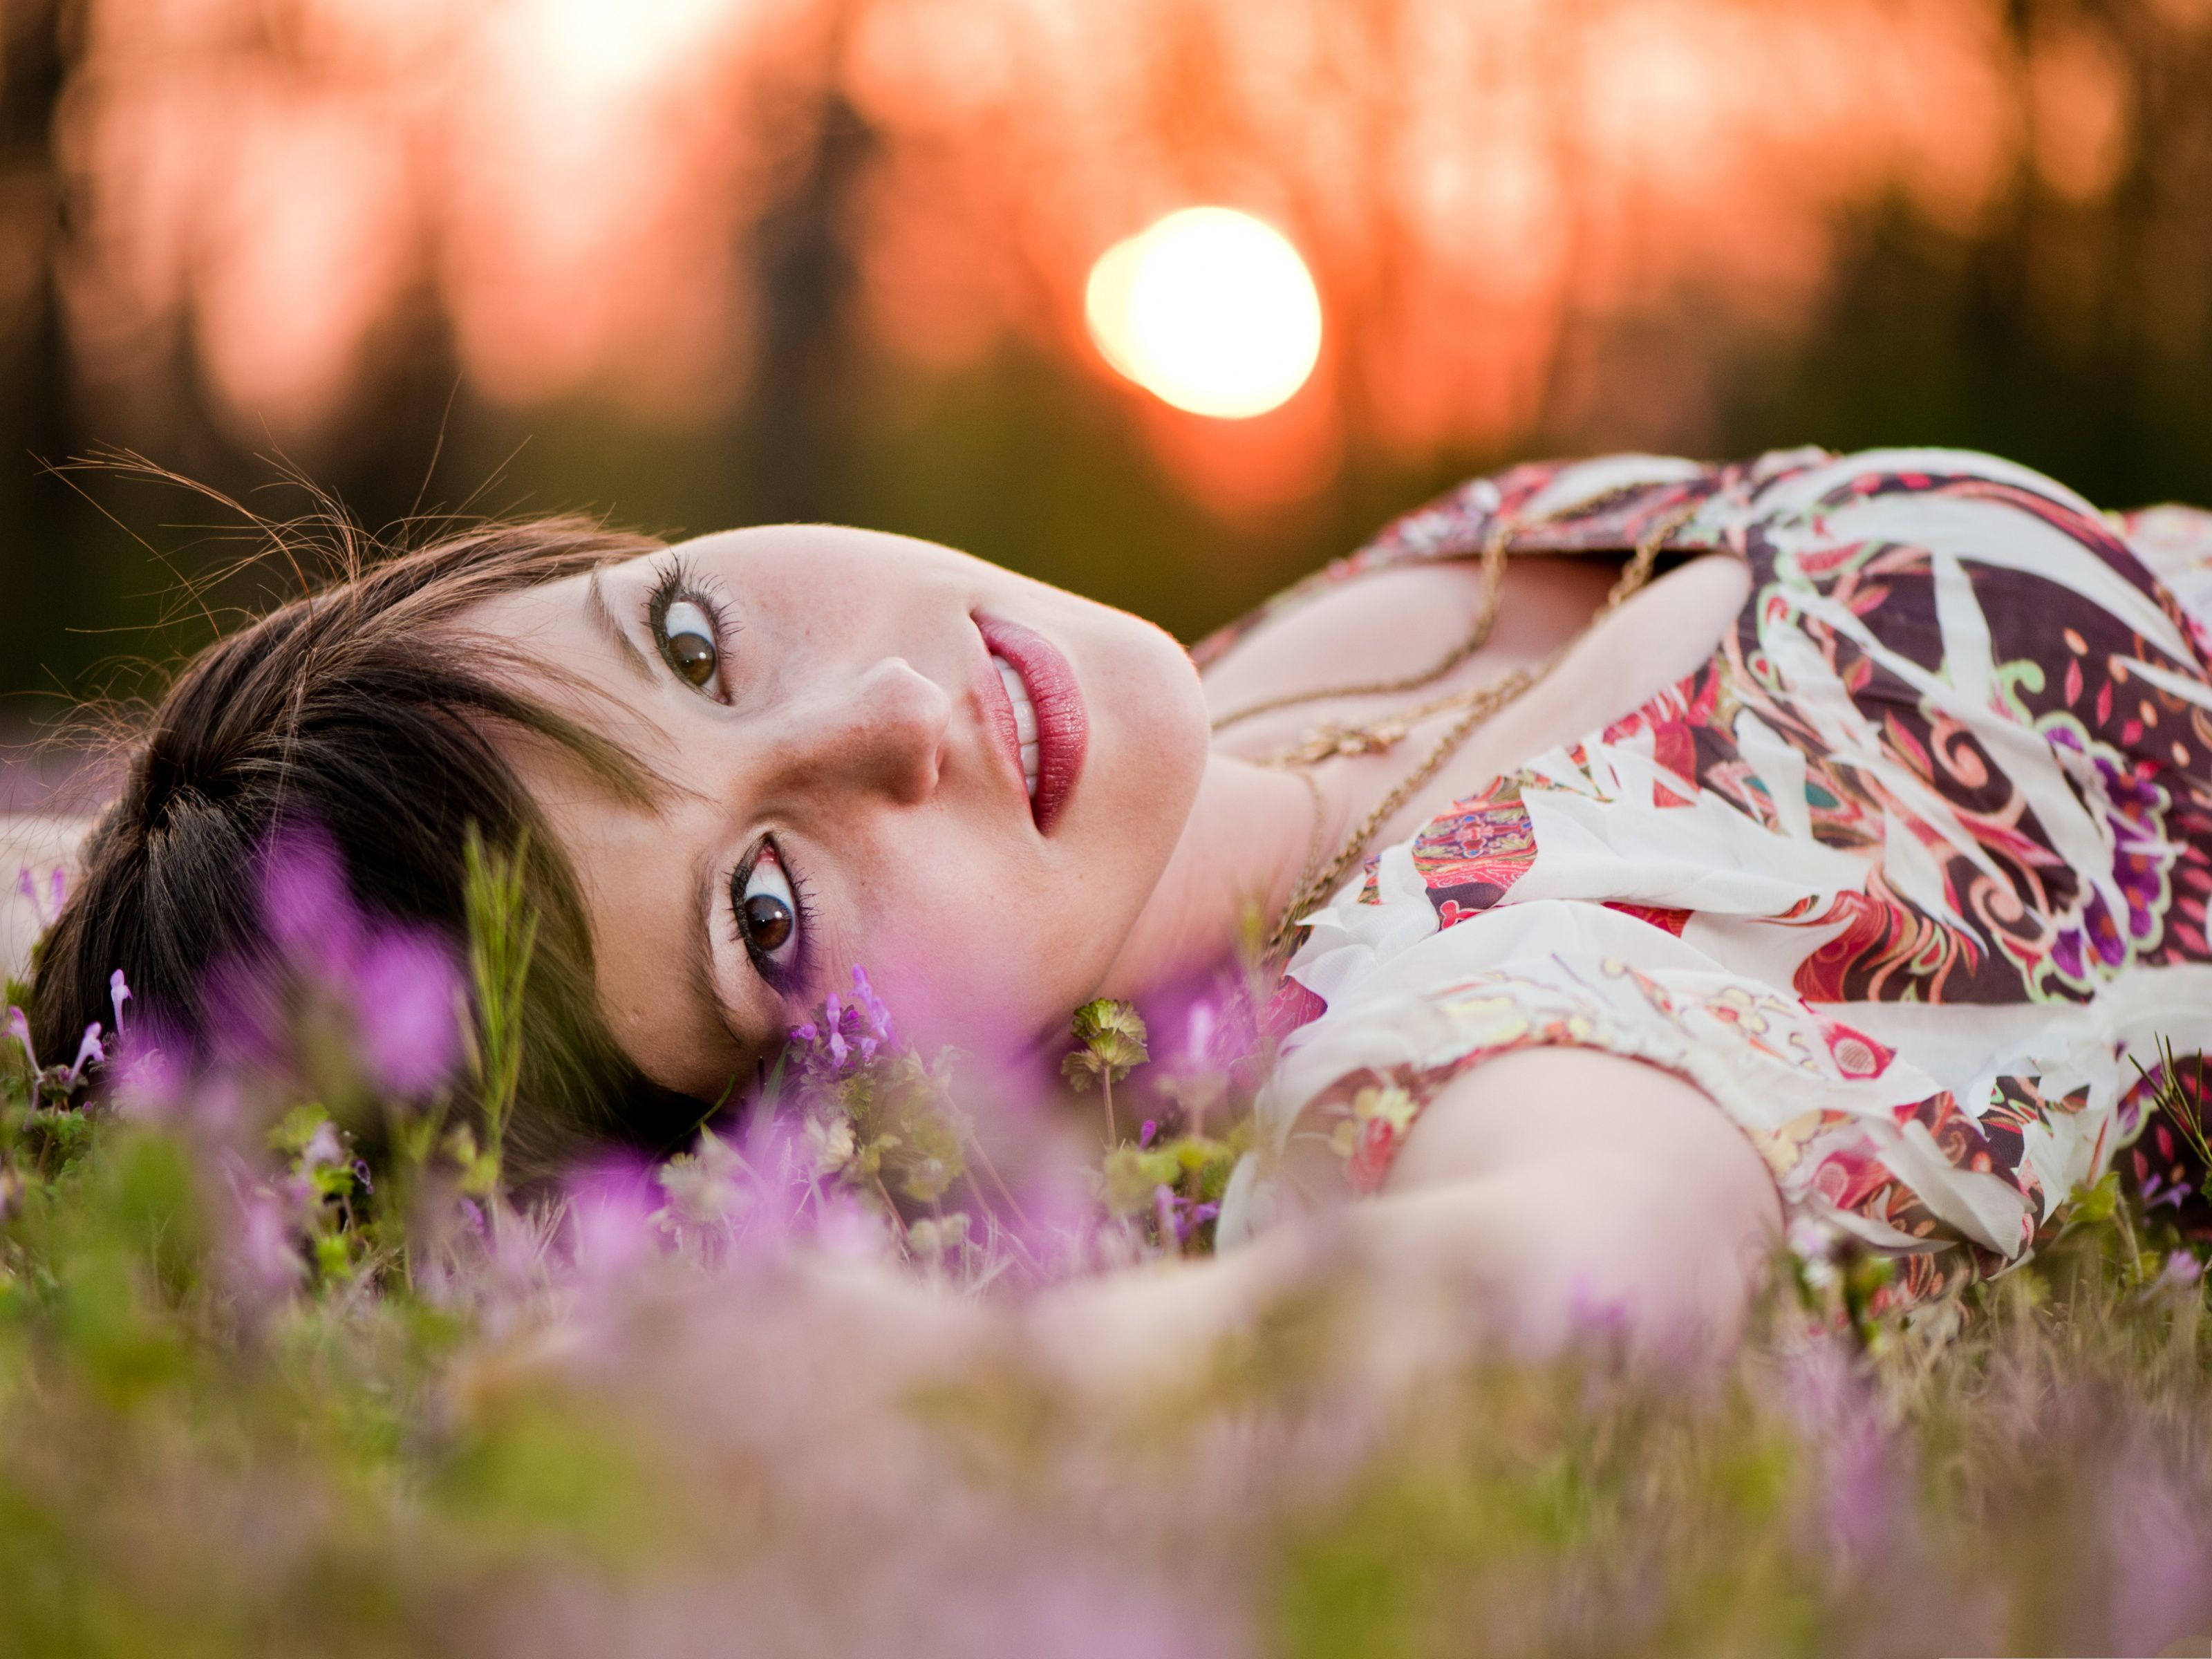 click to free download the wallpaper--Beautiful Girl Outdoor, Amazing Girl Lying on Grass and Flowers, Snowy White Skin 3200X2400 free wallpaper download